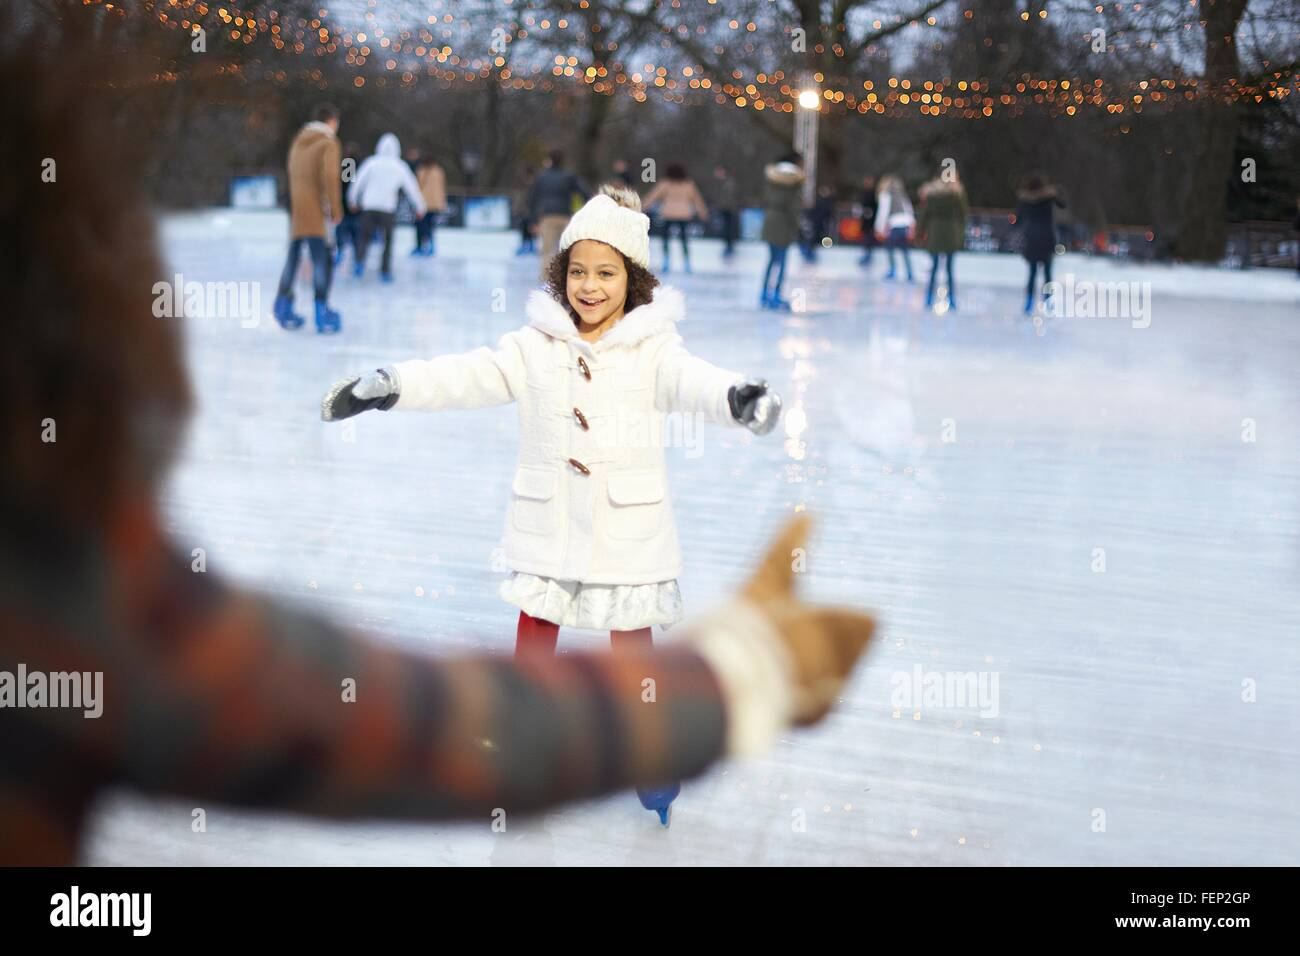 Girl on ice rink, arms open skating to mother smiling - Stock Image